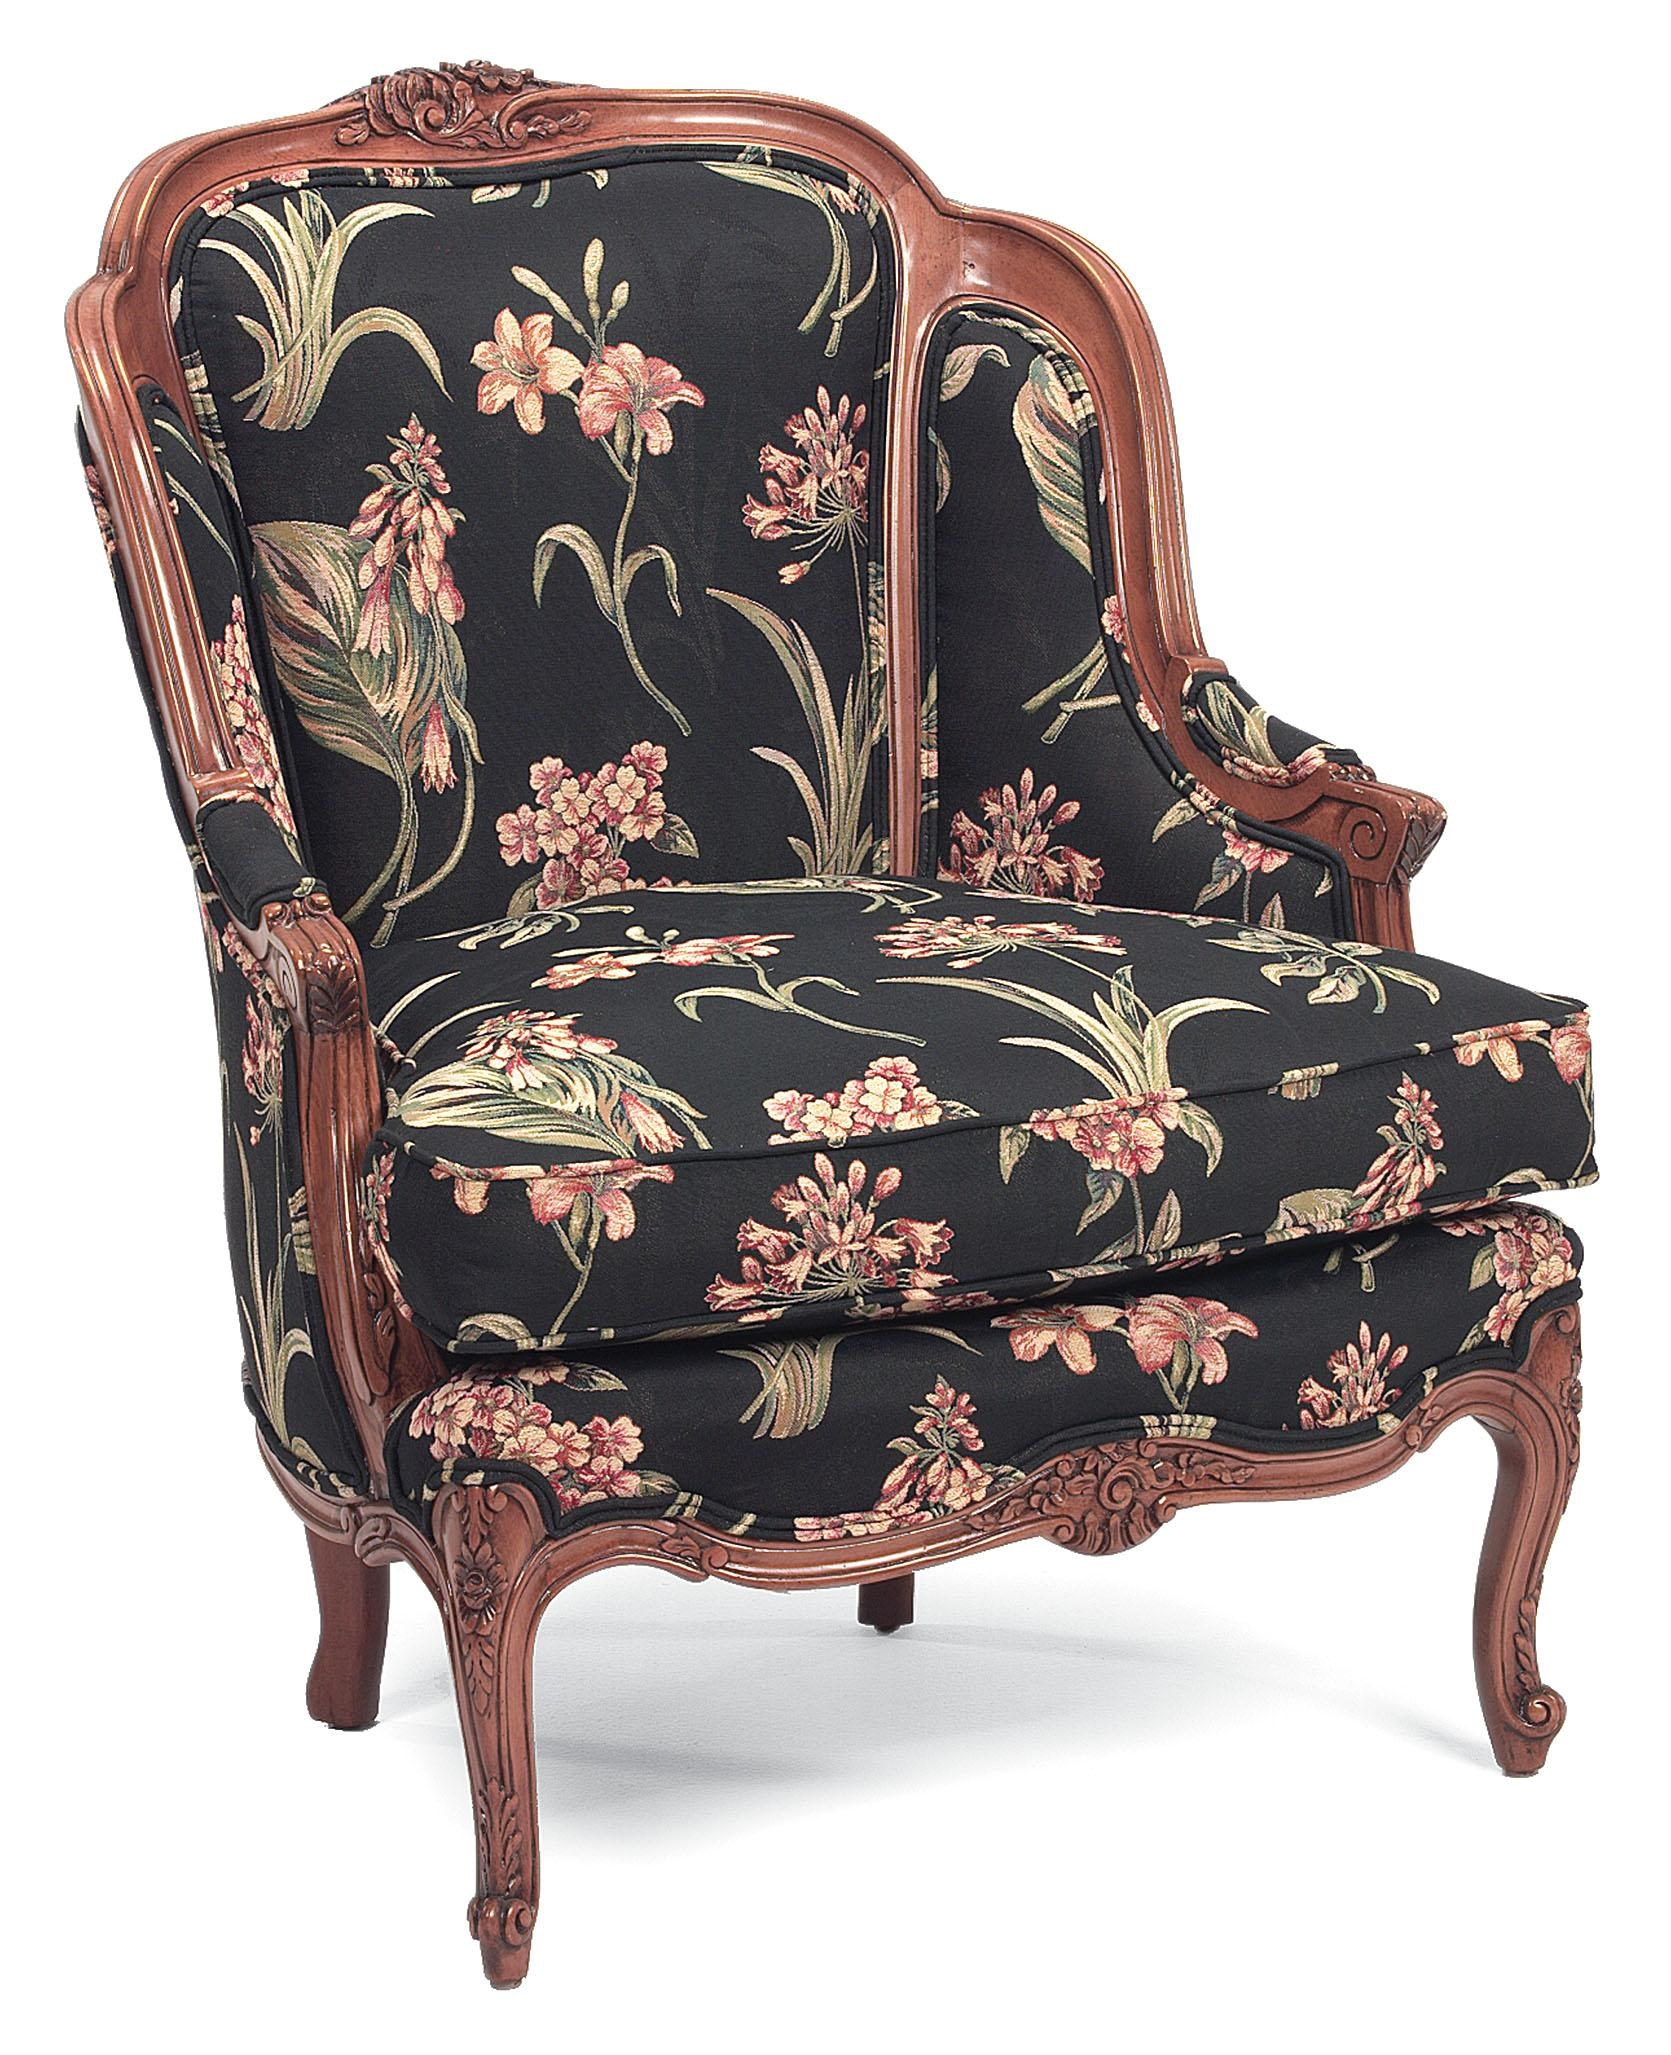 Fairfield Chairs Fairfield Chairs Ornately Carved Exposed Wood Accent Chair